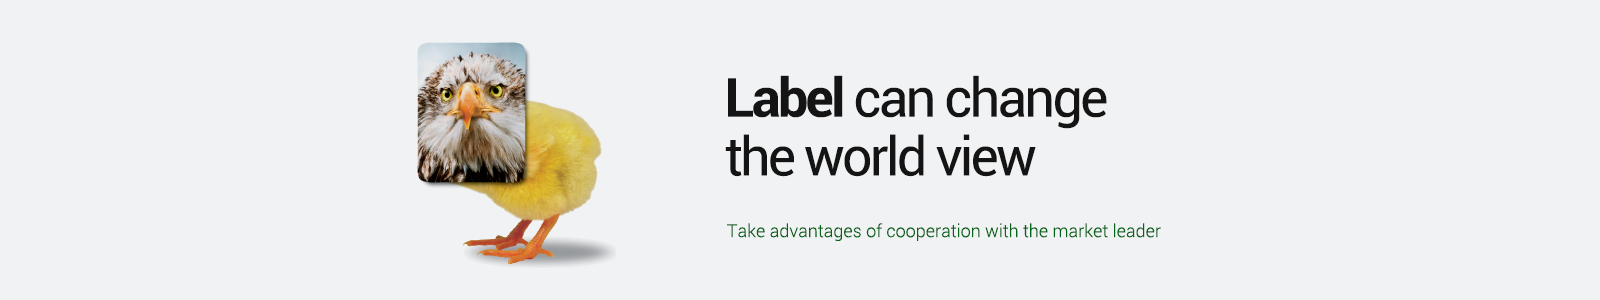 Label can change the world view